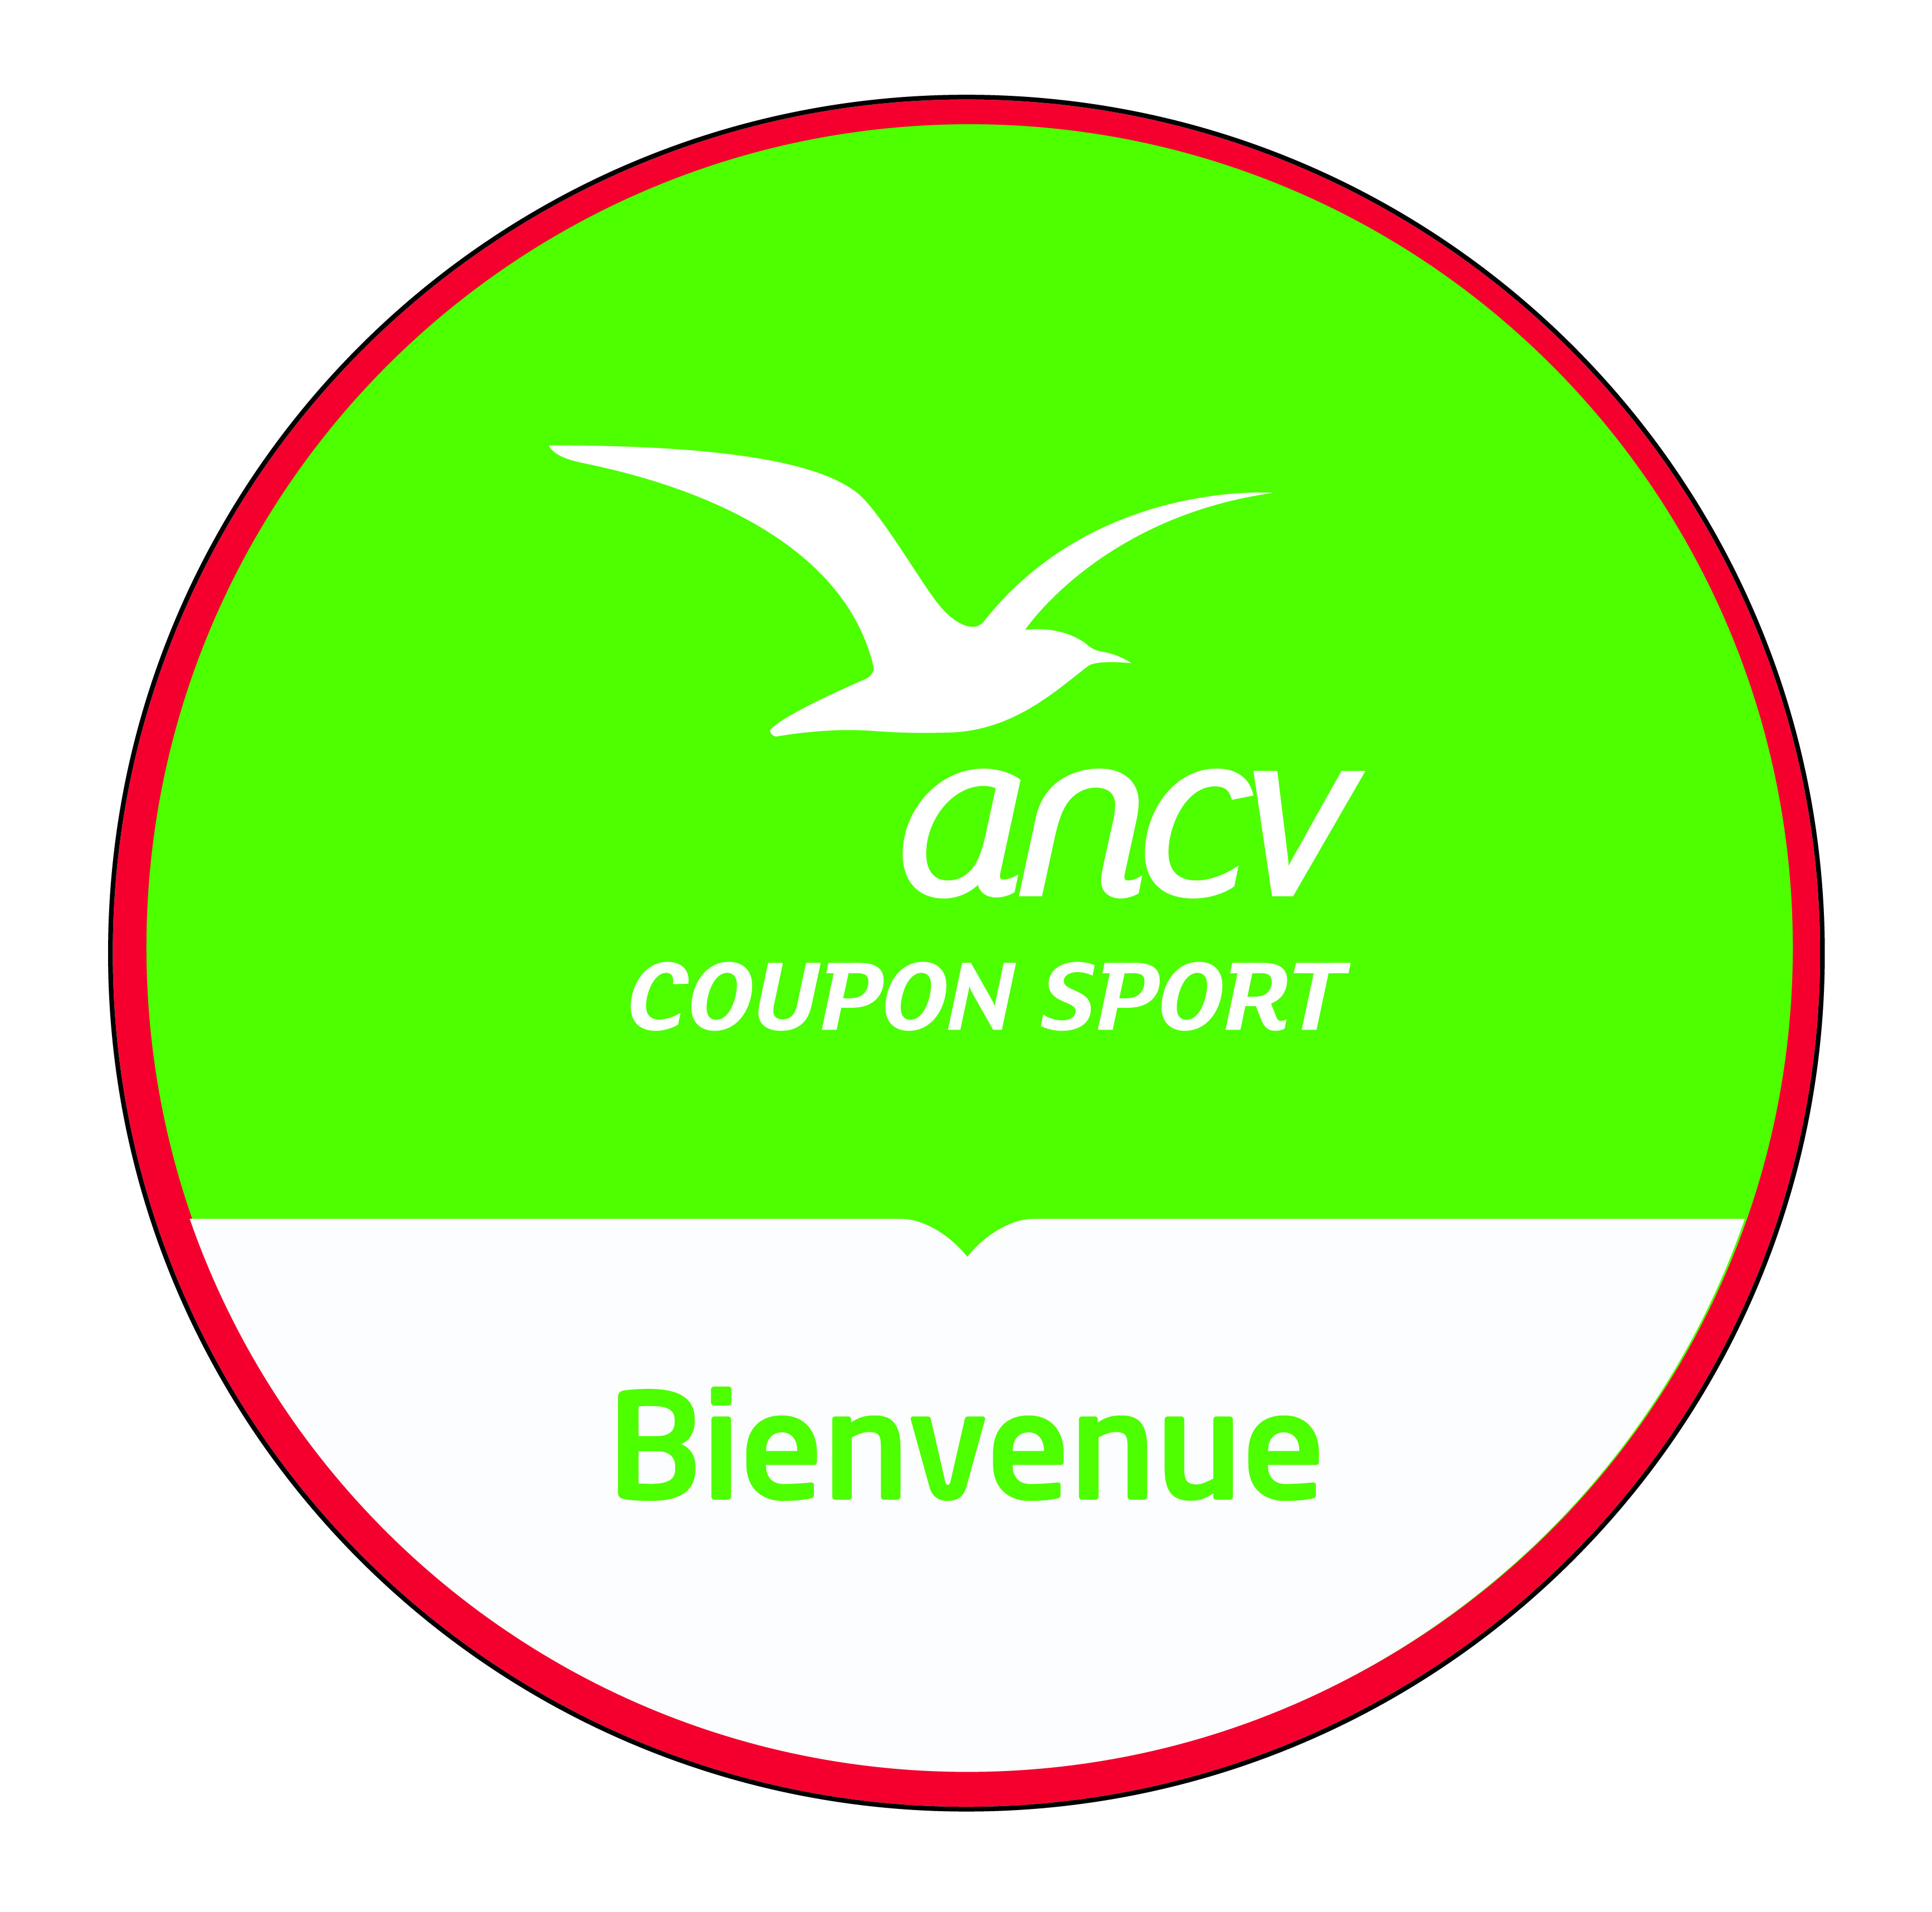 A.N.C.V. Coupon Sport DANCE-ALL-LIFE